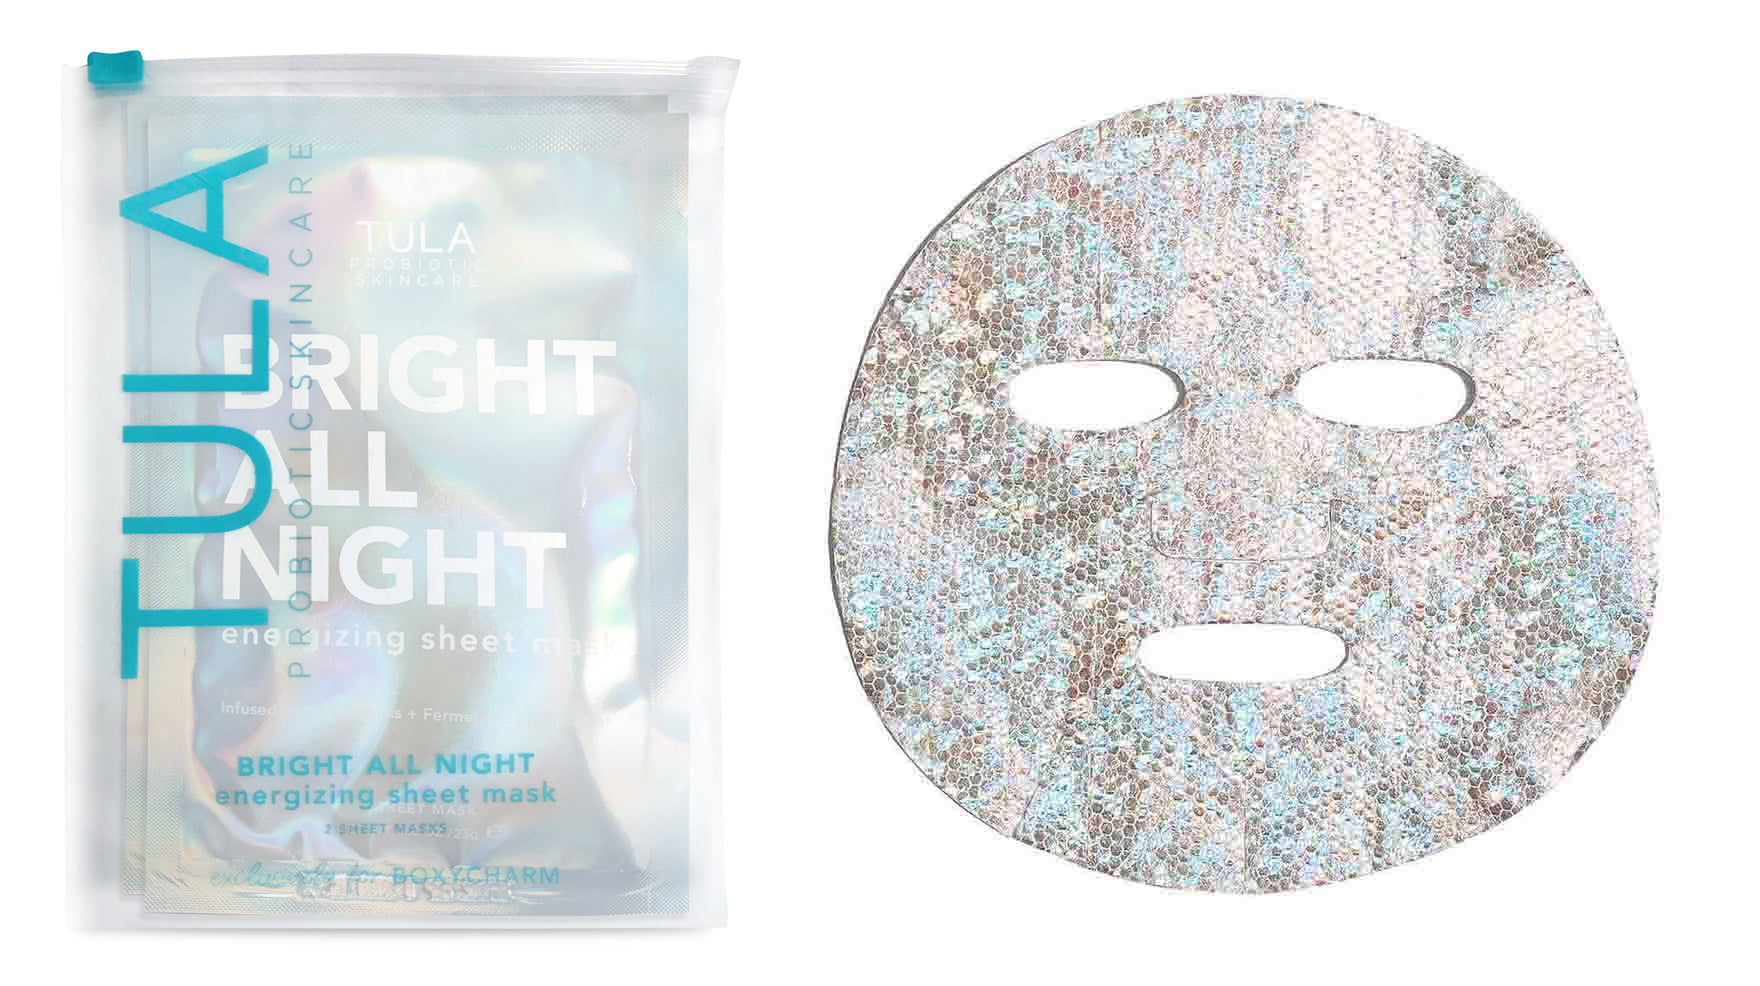 bright all night mask - how to use